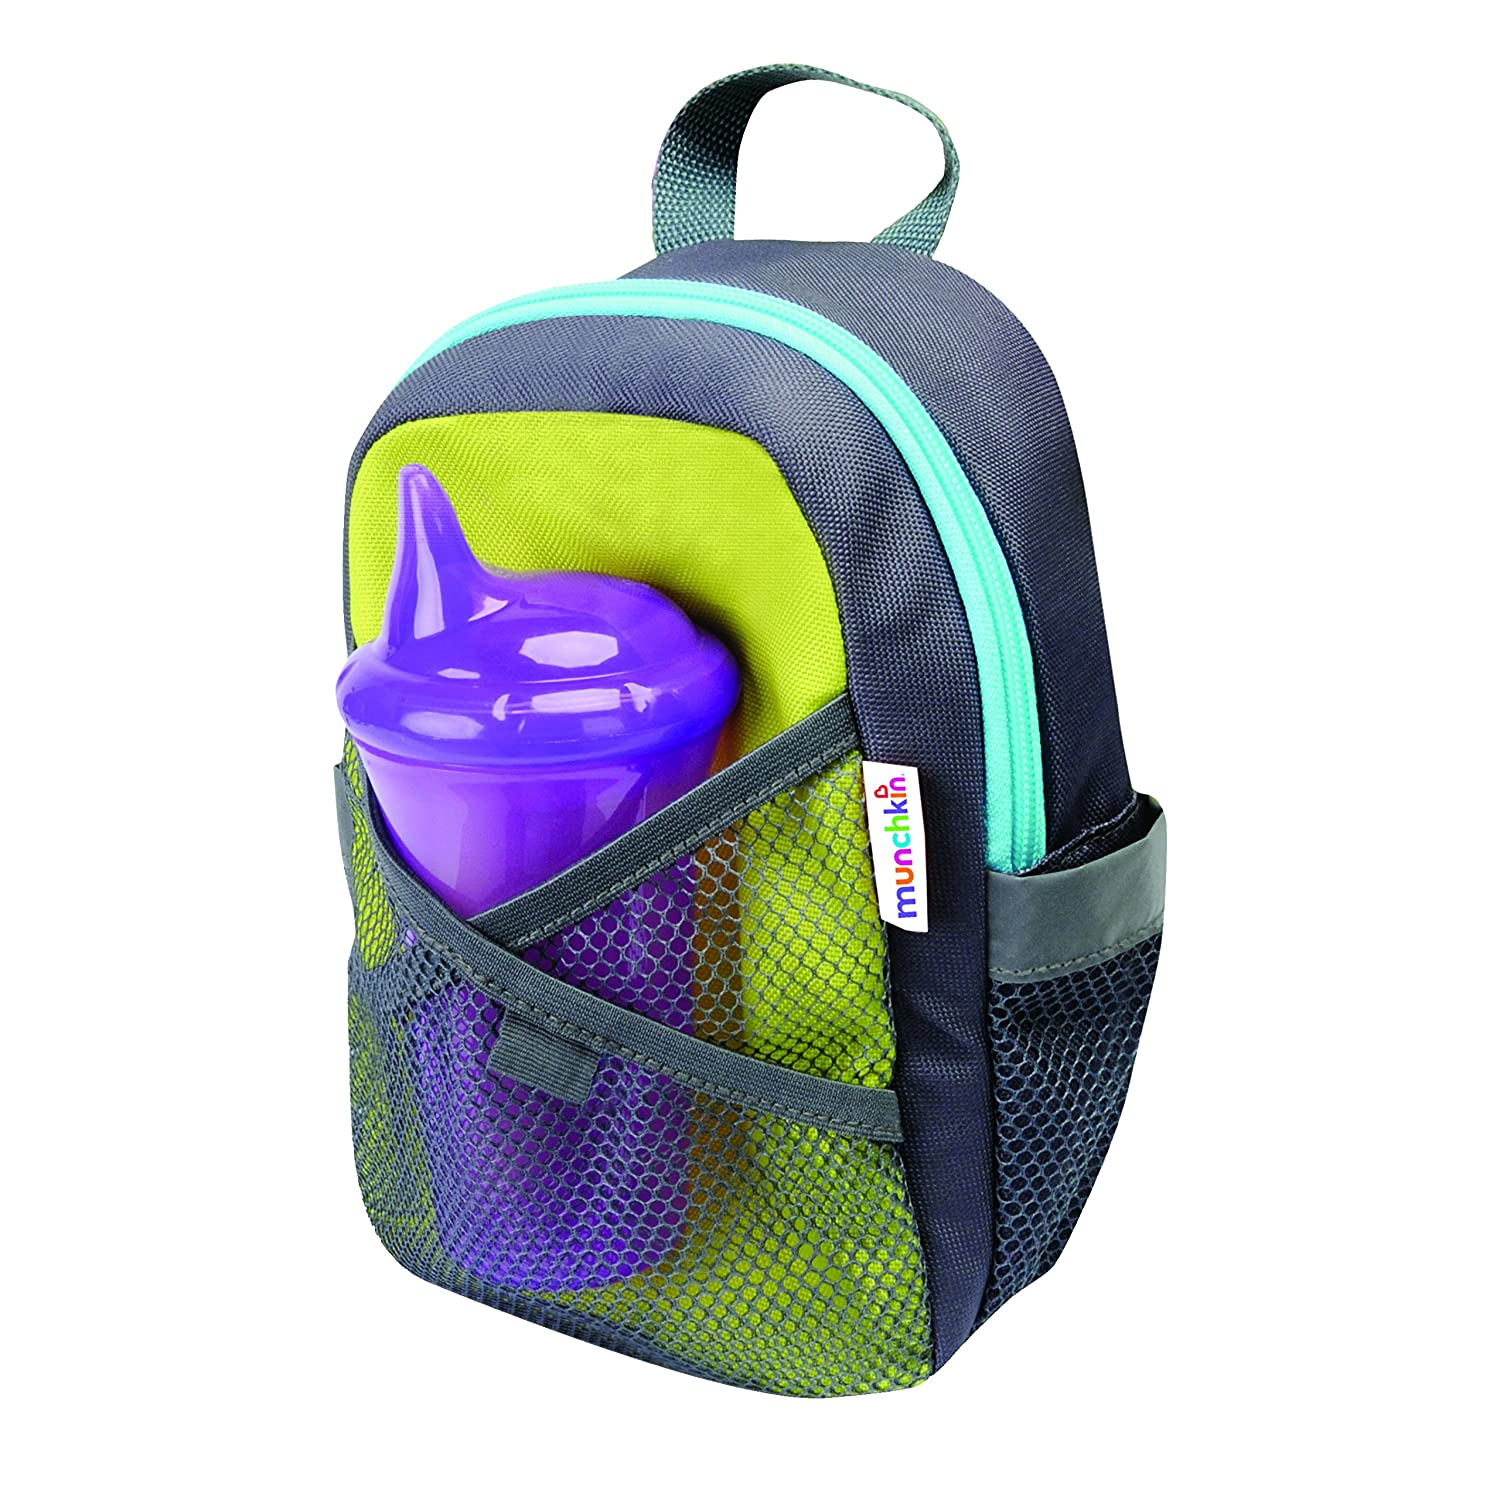 Munchkin By My Side Safety Harness Backpack (Neutral) 012046